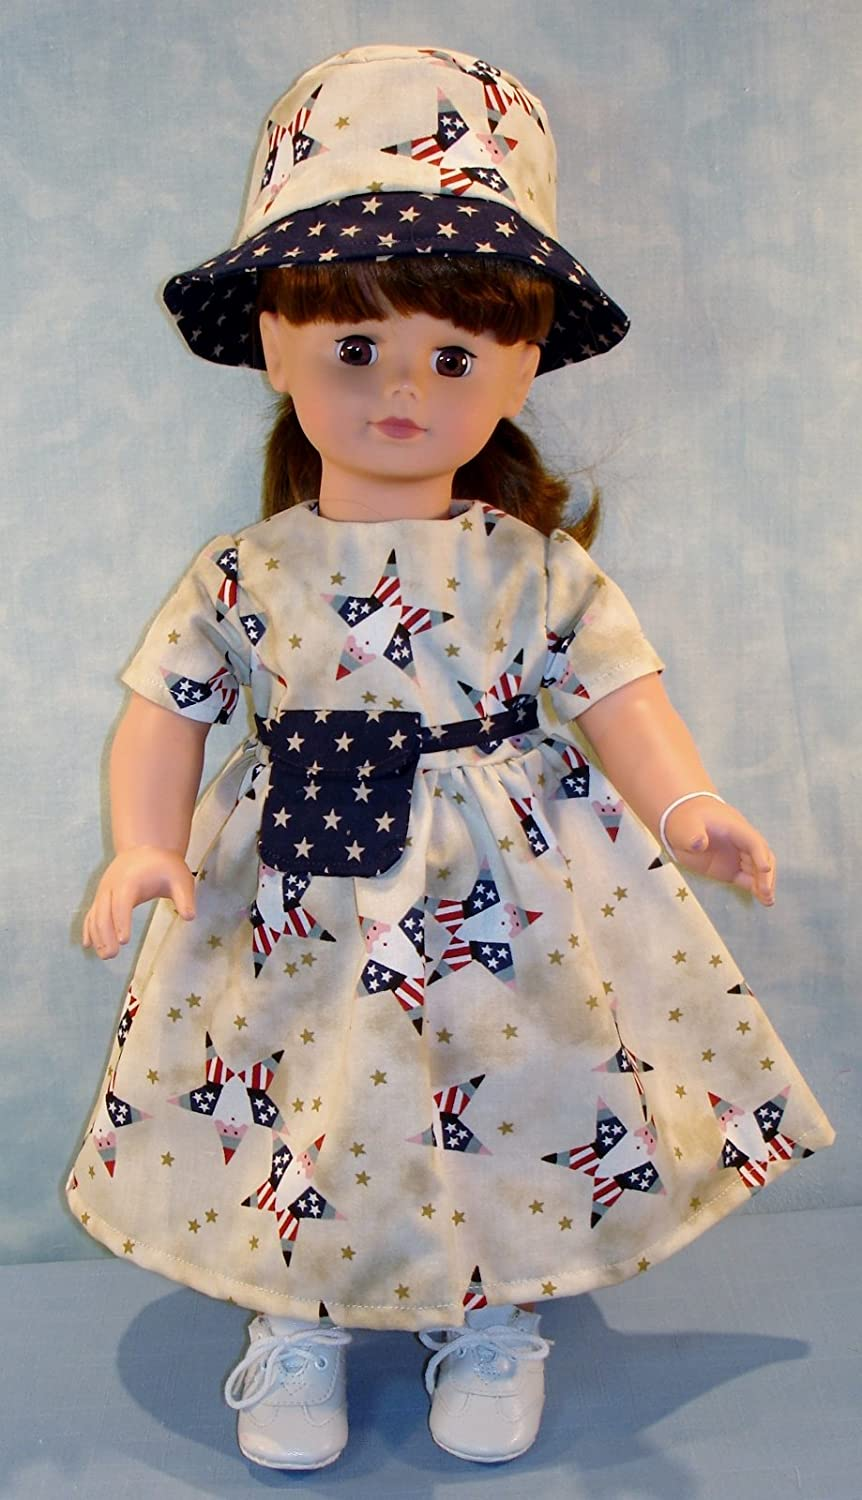 18 Inch Doll Clothes - Patriotic Stars 4th of July Outfit handmade by Jane Ellen to fit 18 inch dolls